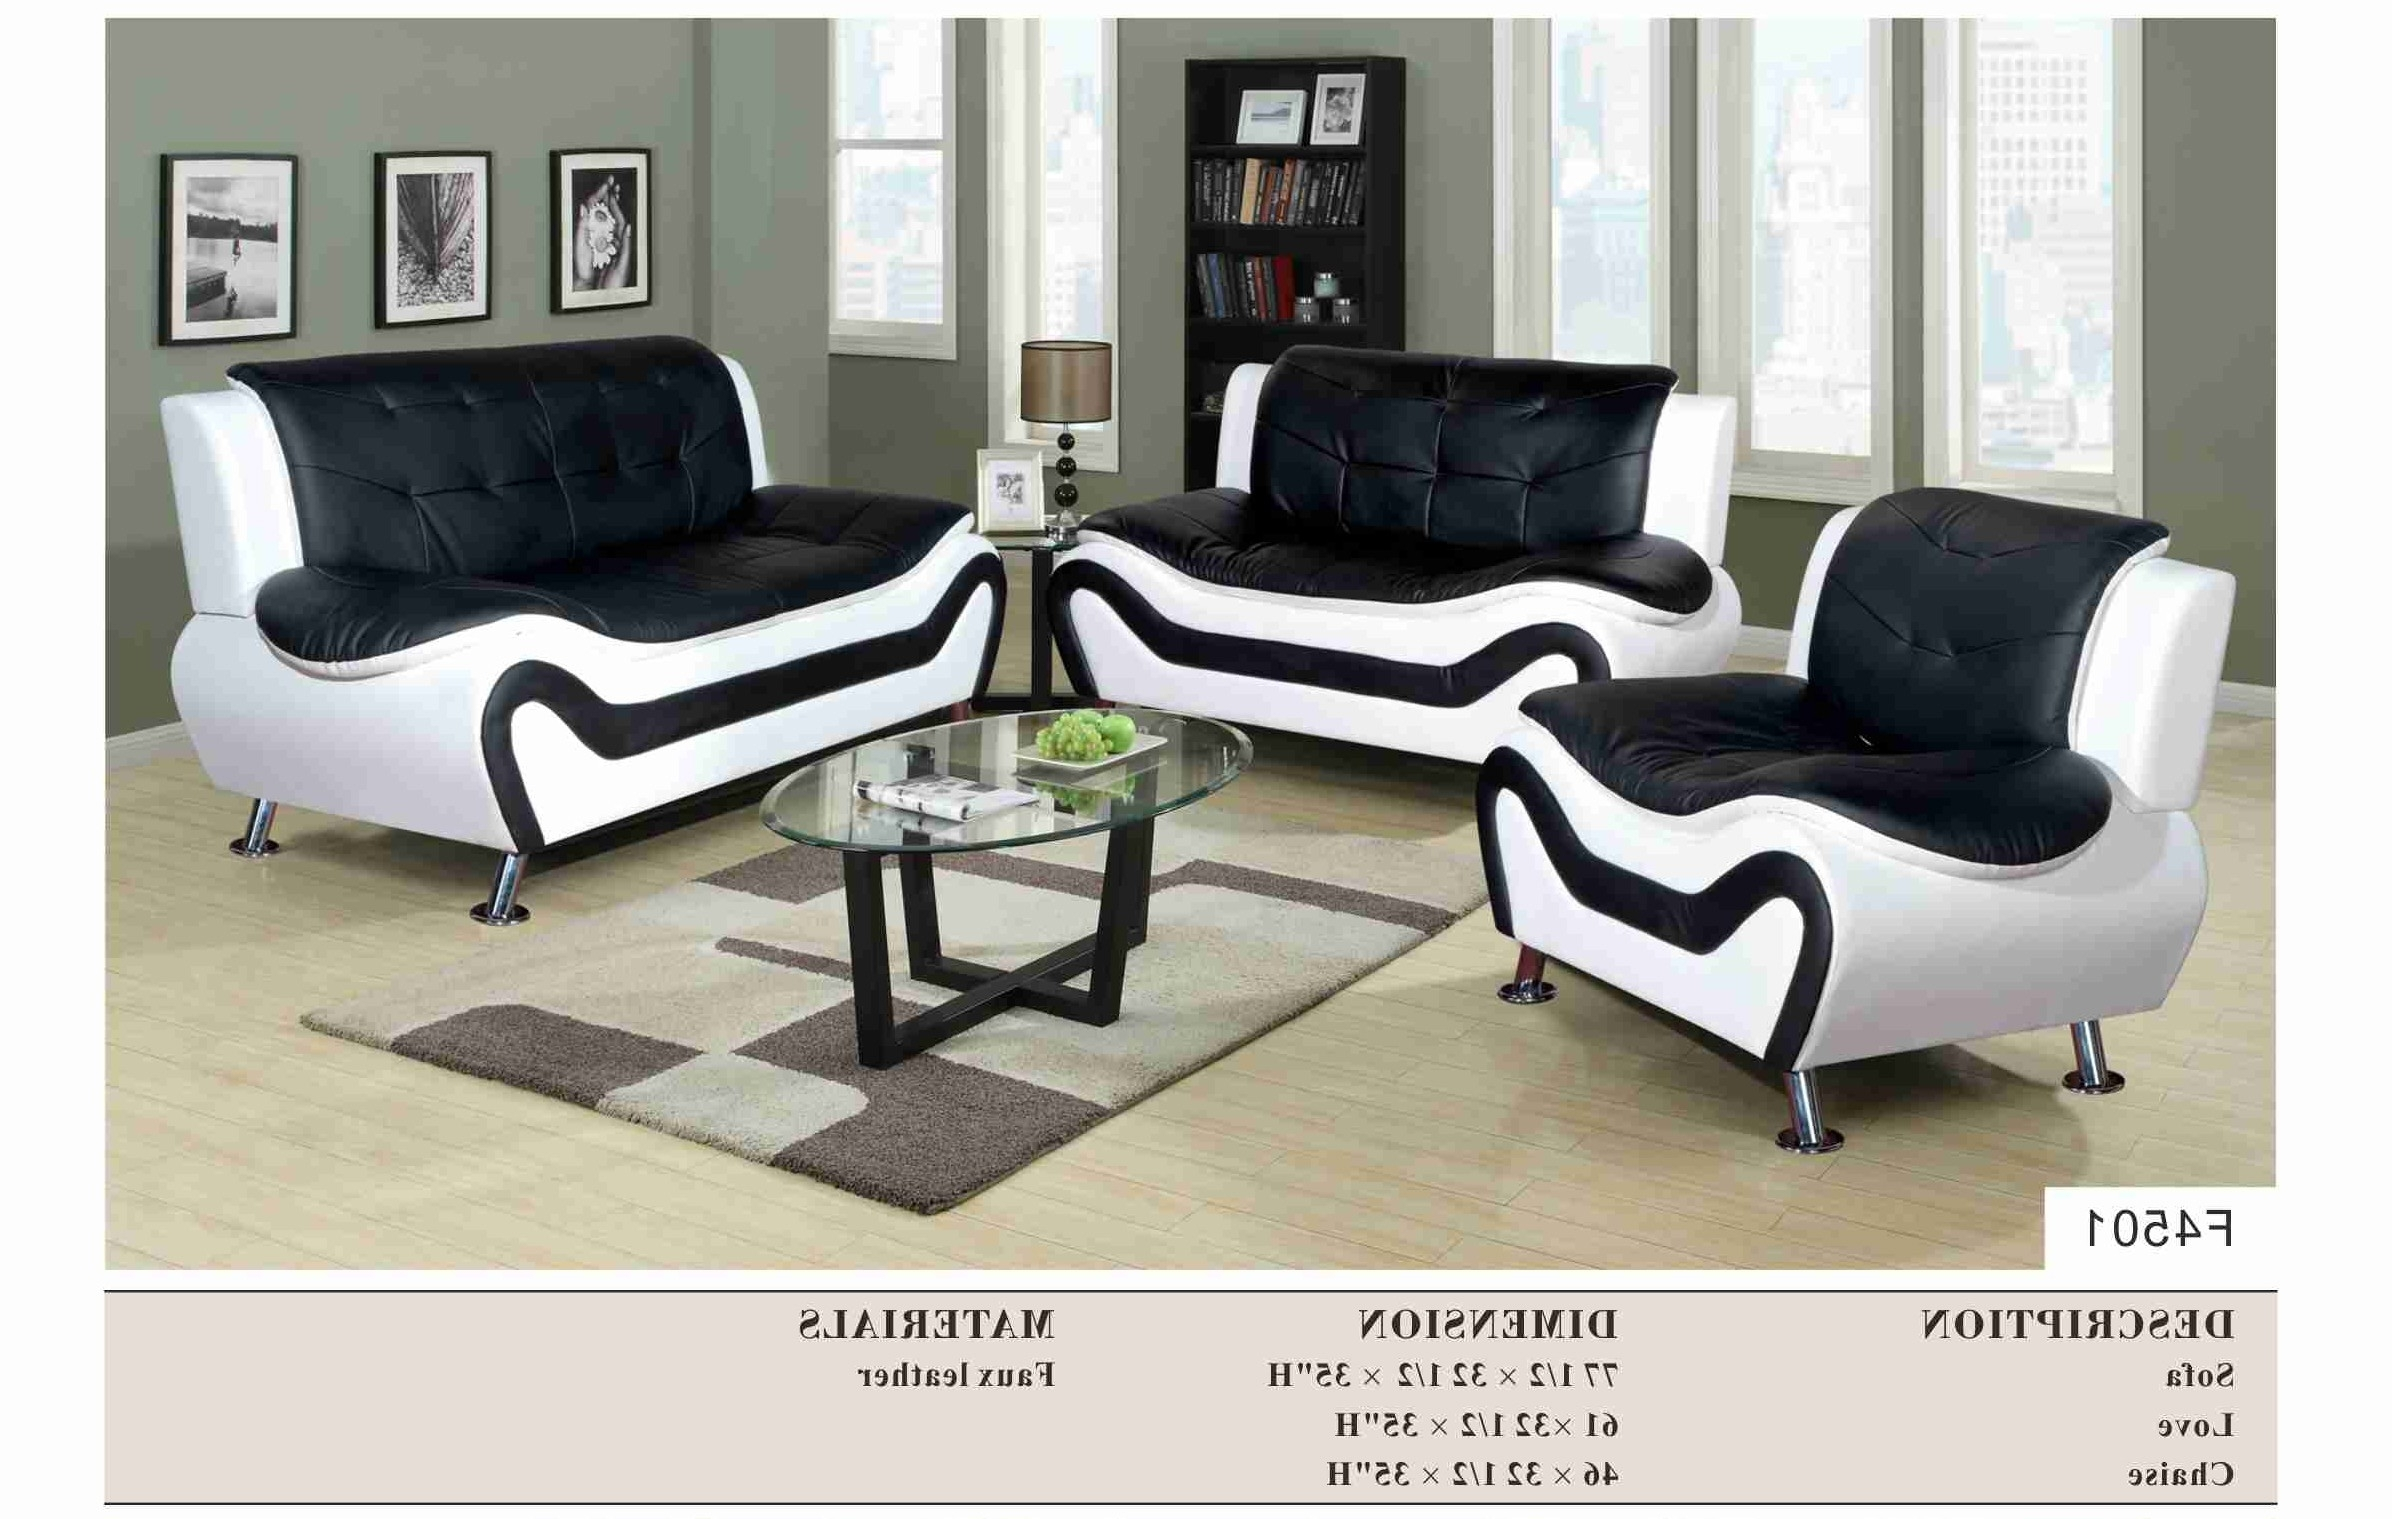 Widely Used Black And White Sofas Inside Black And White Sofas For Decor 15 – Visionexchange (View 19 of 20)